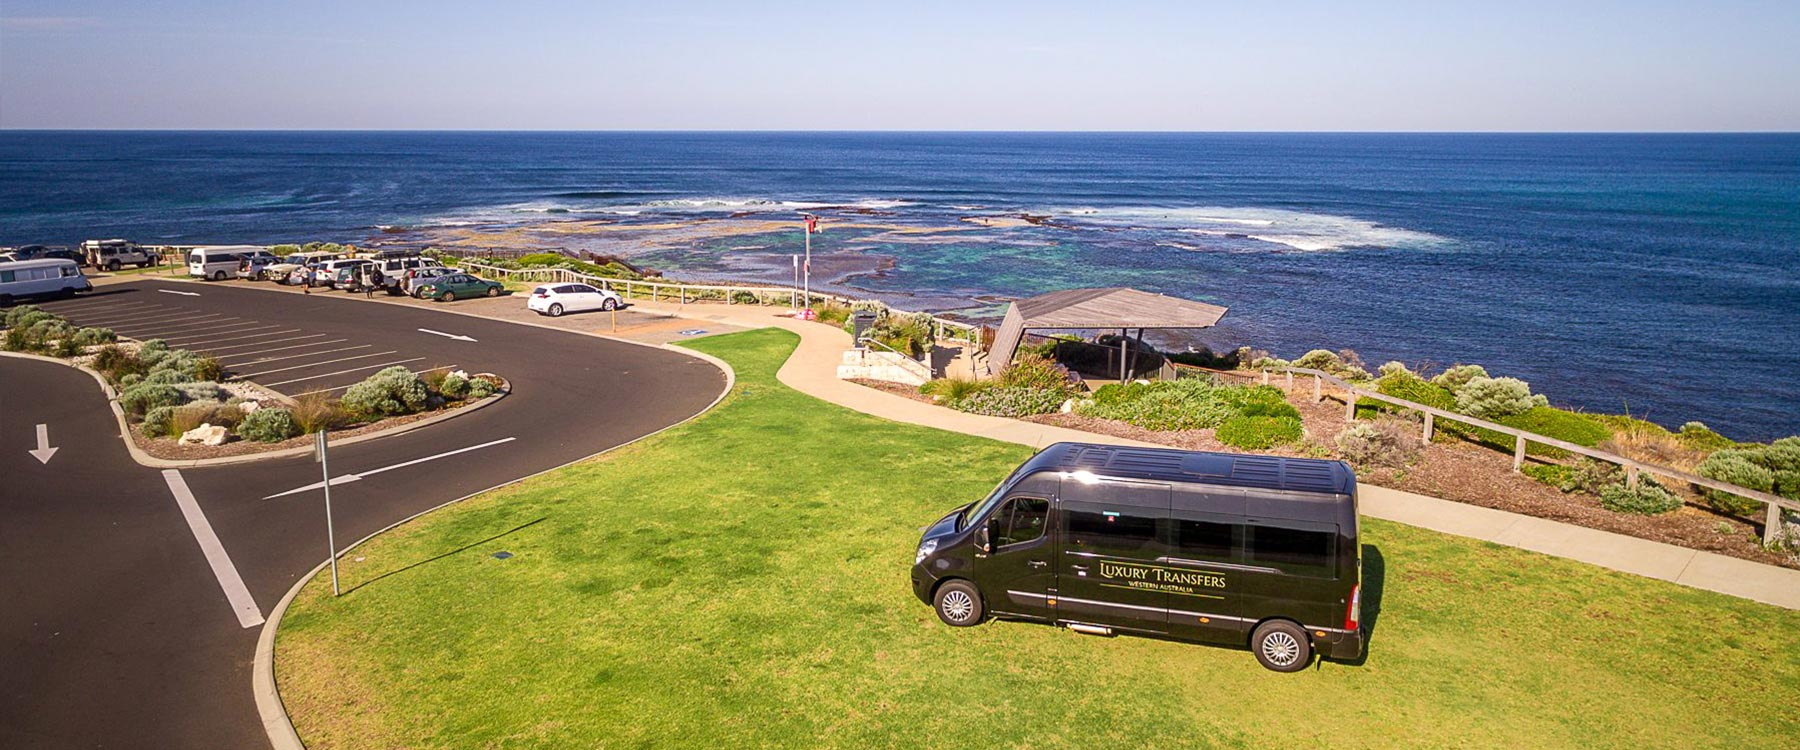 busselton to perth airport transfers